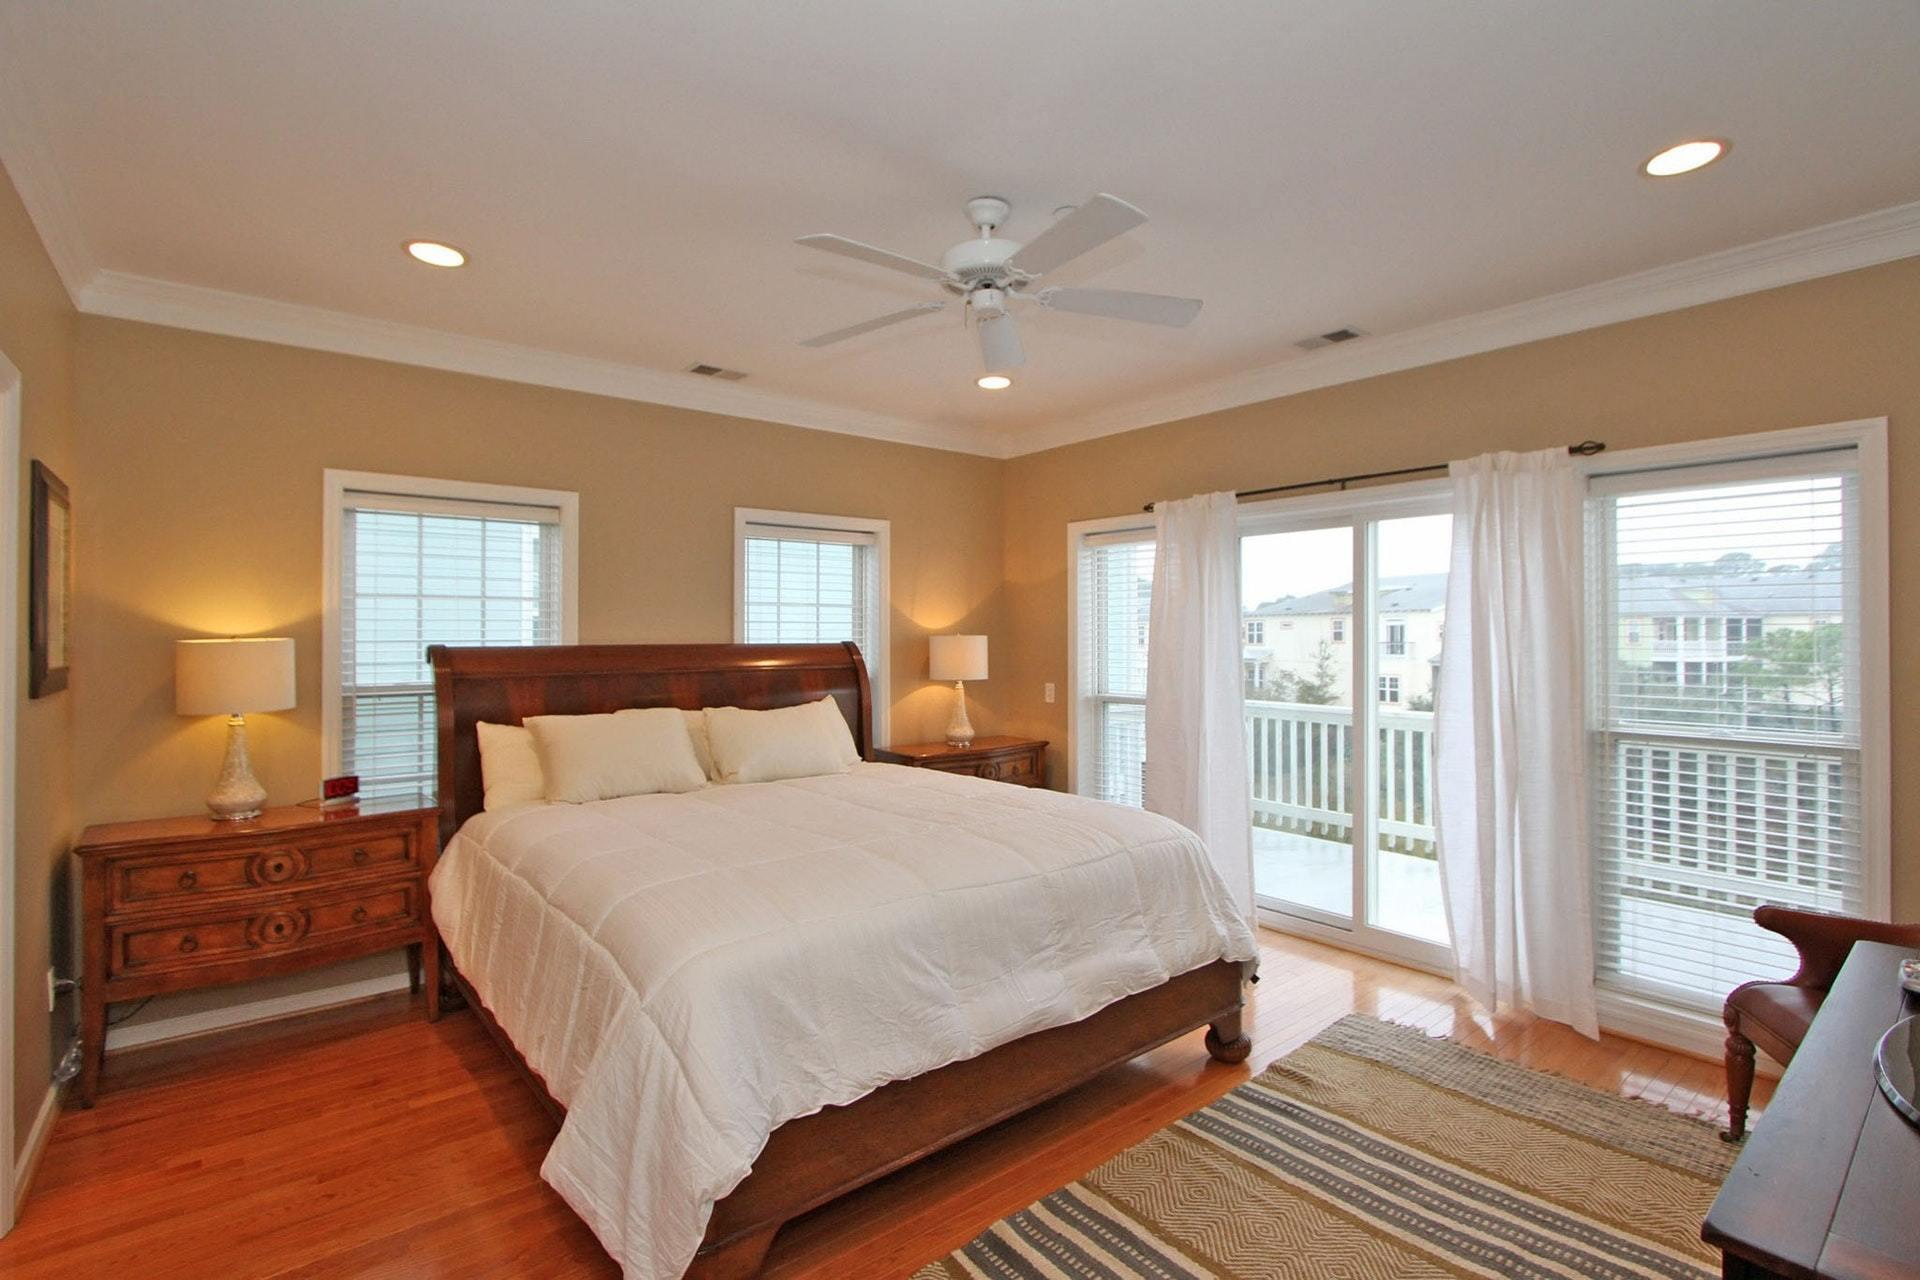 Waters Edge Homes For Sale - 85 2nd, Folly Beach, SC - 2